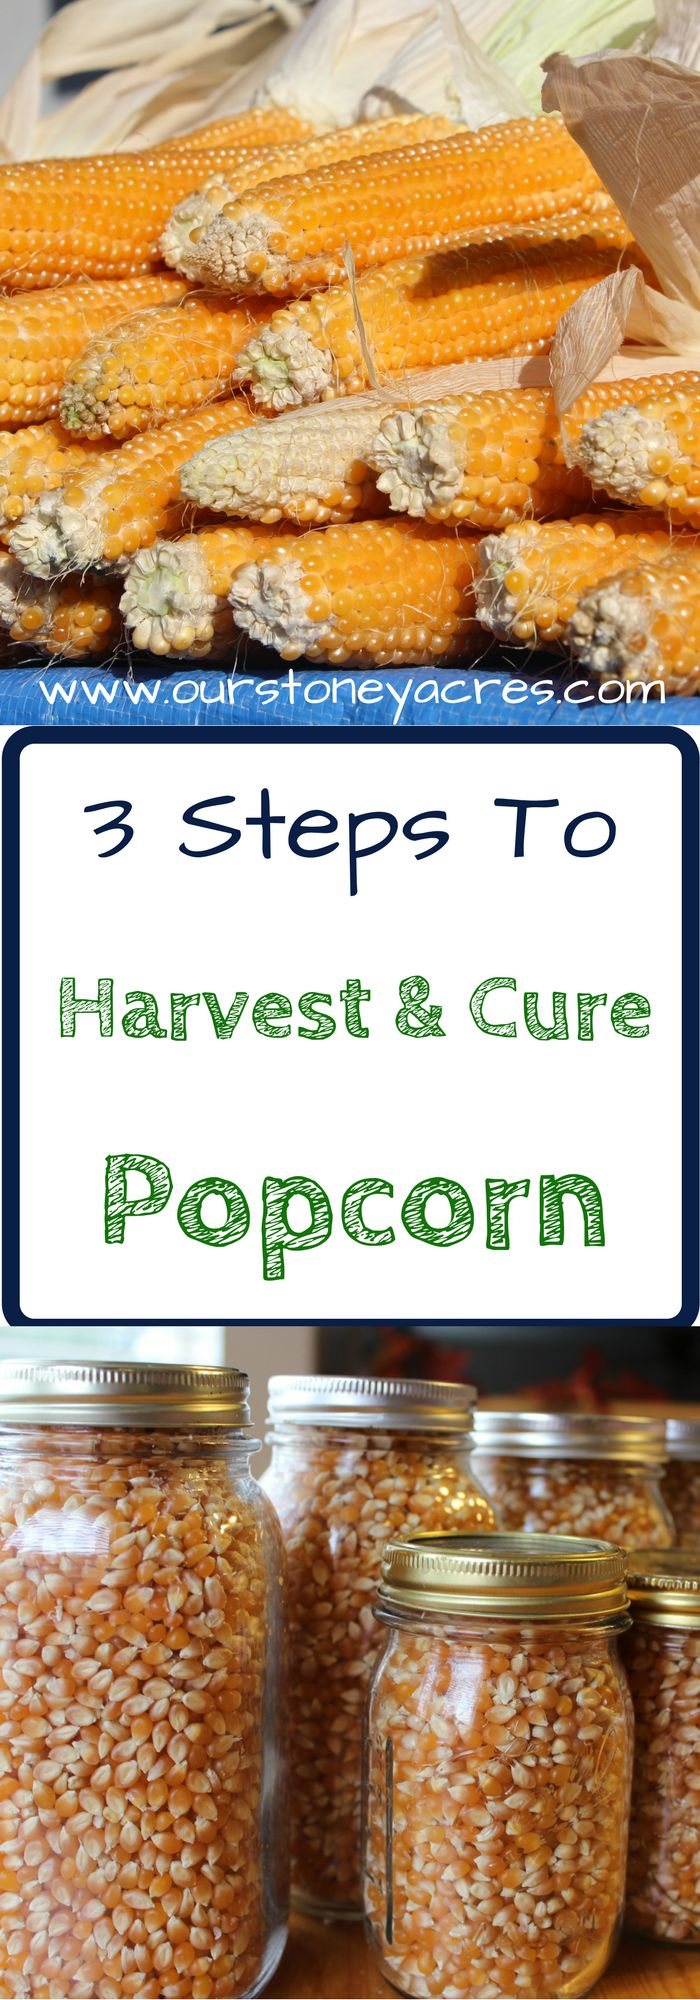 Curing Popcorn. Harvesting and curing popcorn is a simple process that should be done in mid fall, after your first frost but before snow or rain settle in.